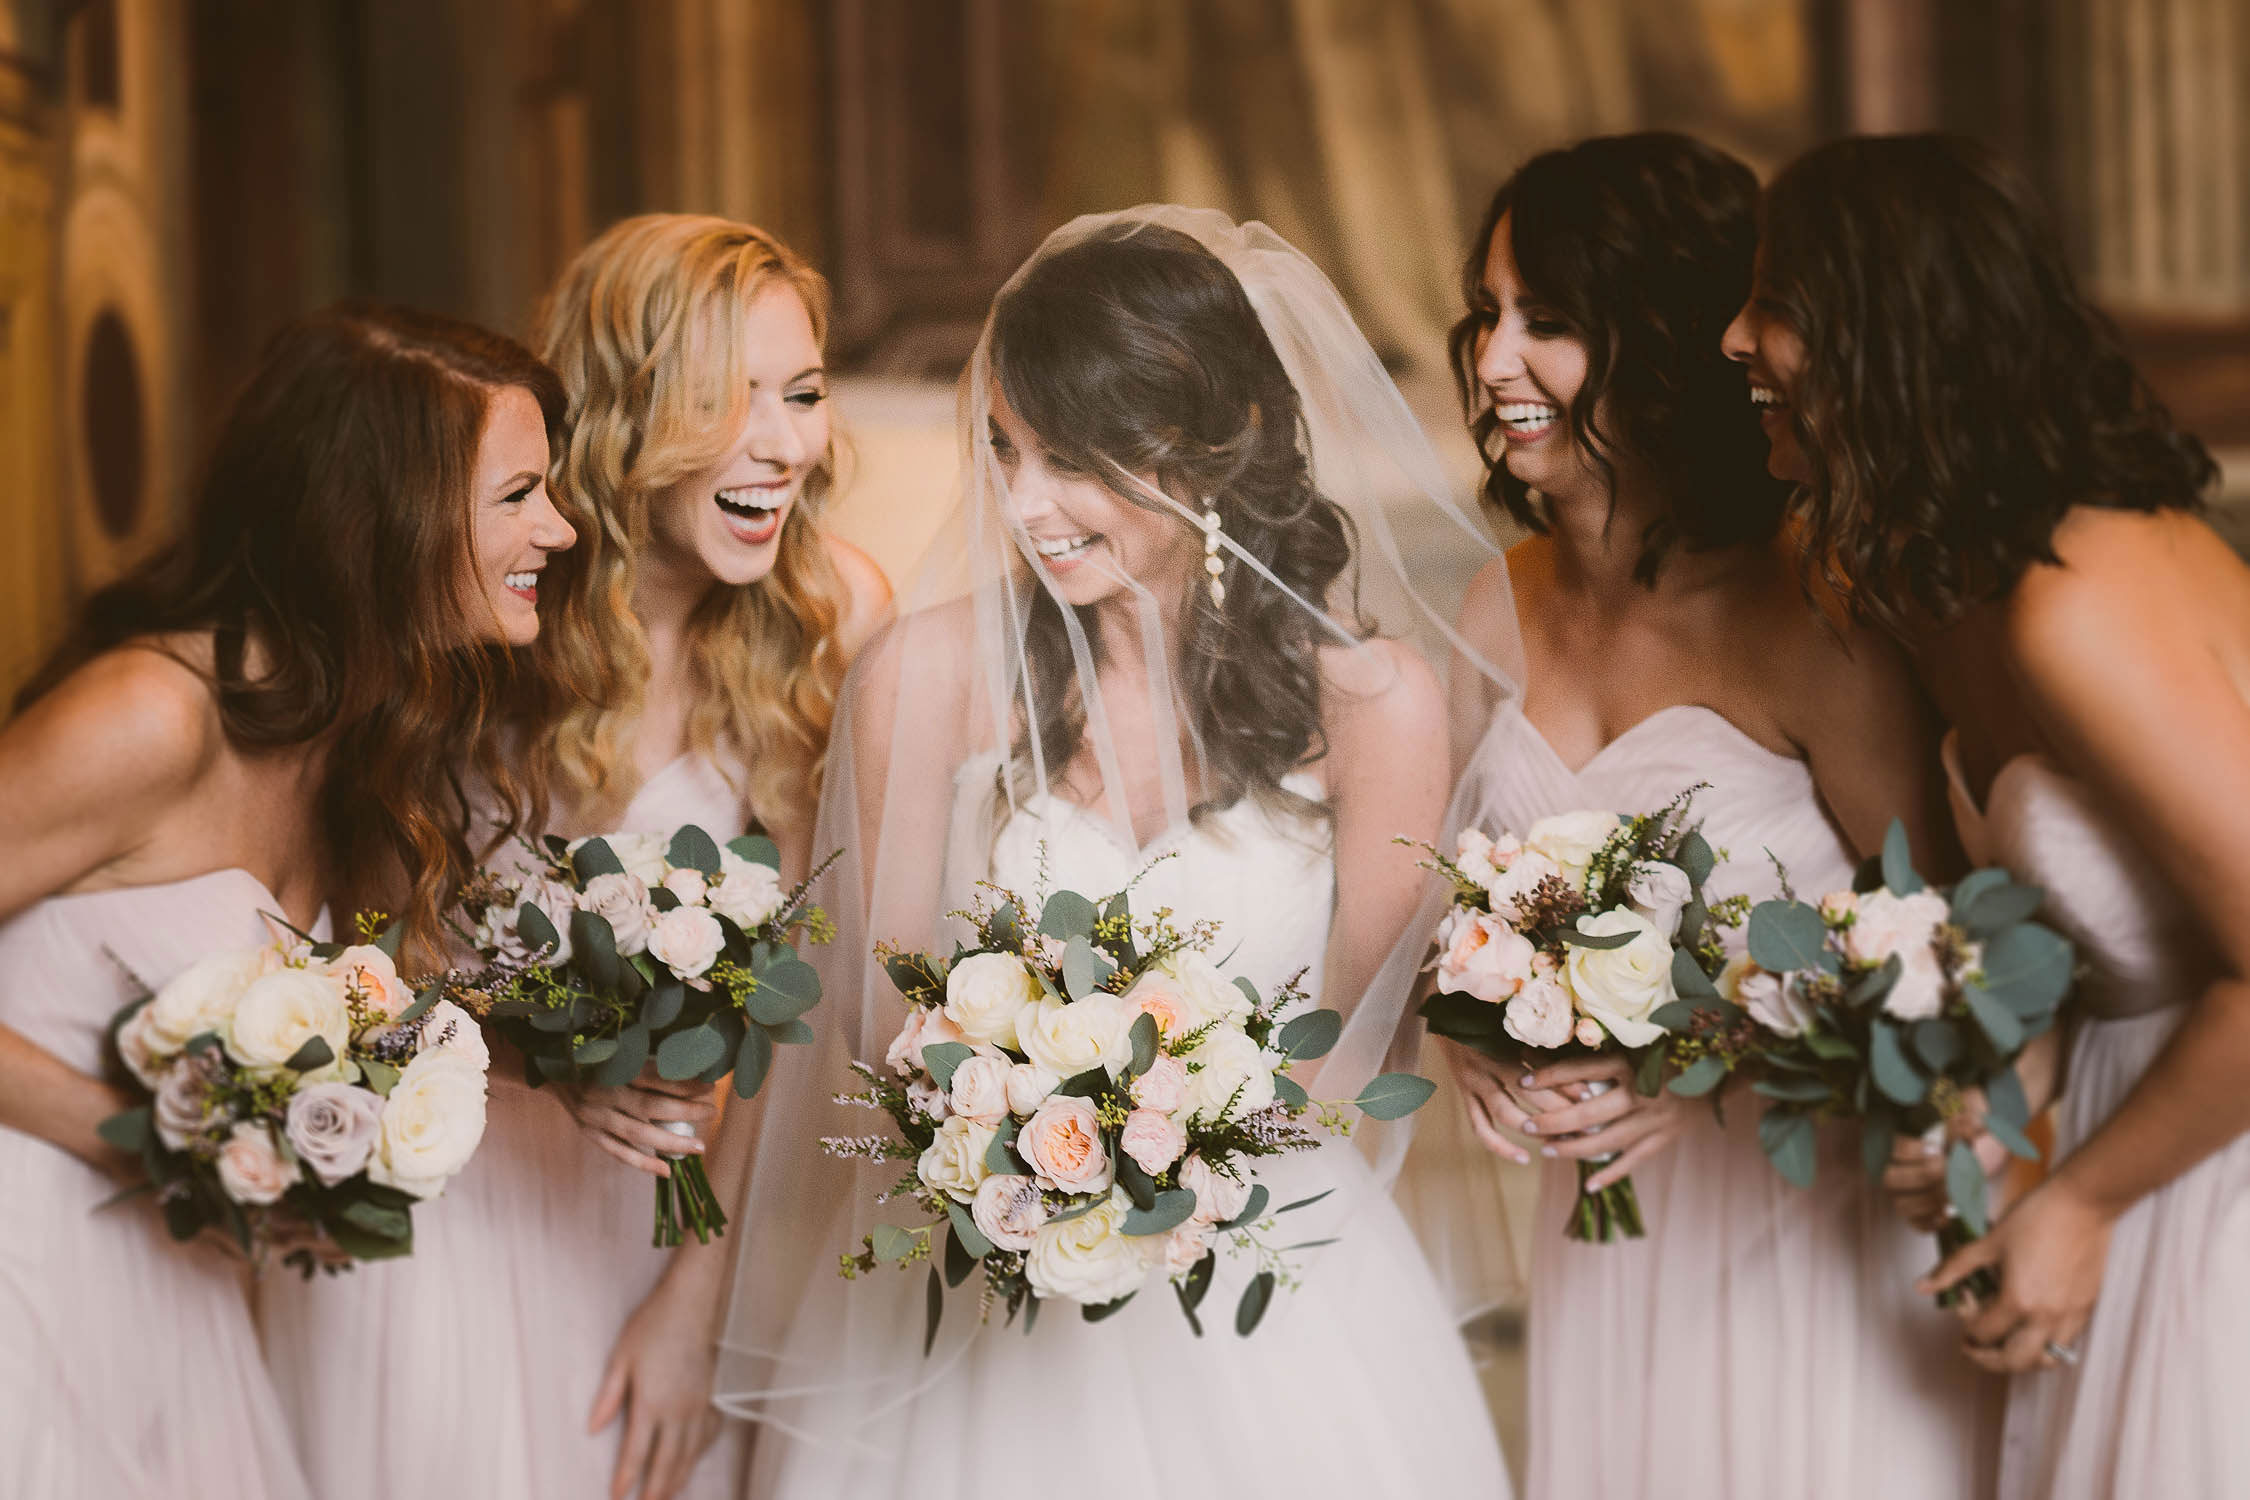 Bridal party portrait and lovely candid moment into Palazzo Pubblico in Siena for a beautiful intimate destination wedding